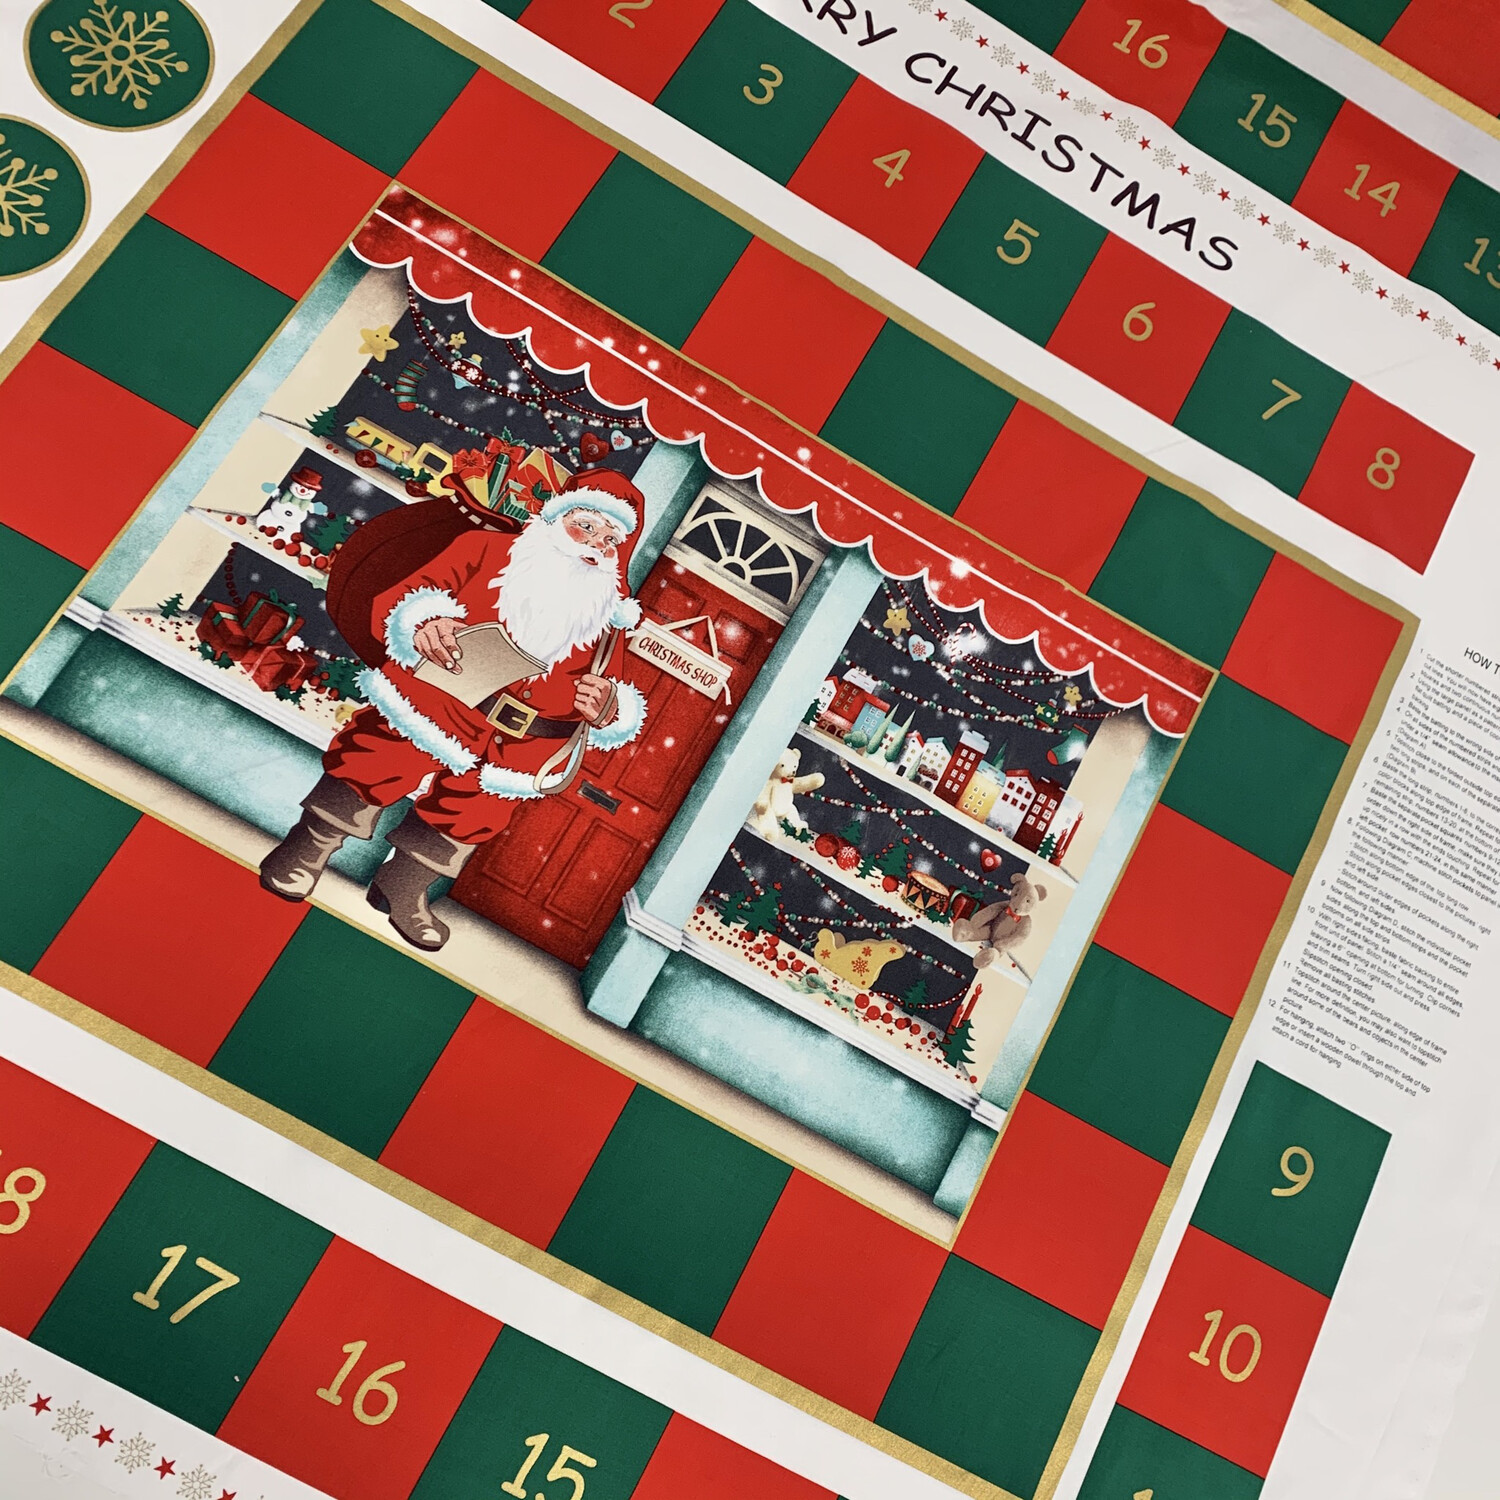 Red and Green Christmas Toy Shop Advent Calendar Pockets, 100% Cotton Poplin, Festive Fabric Panel